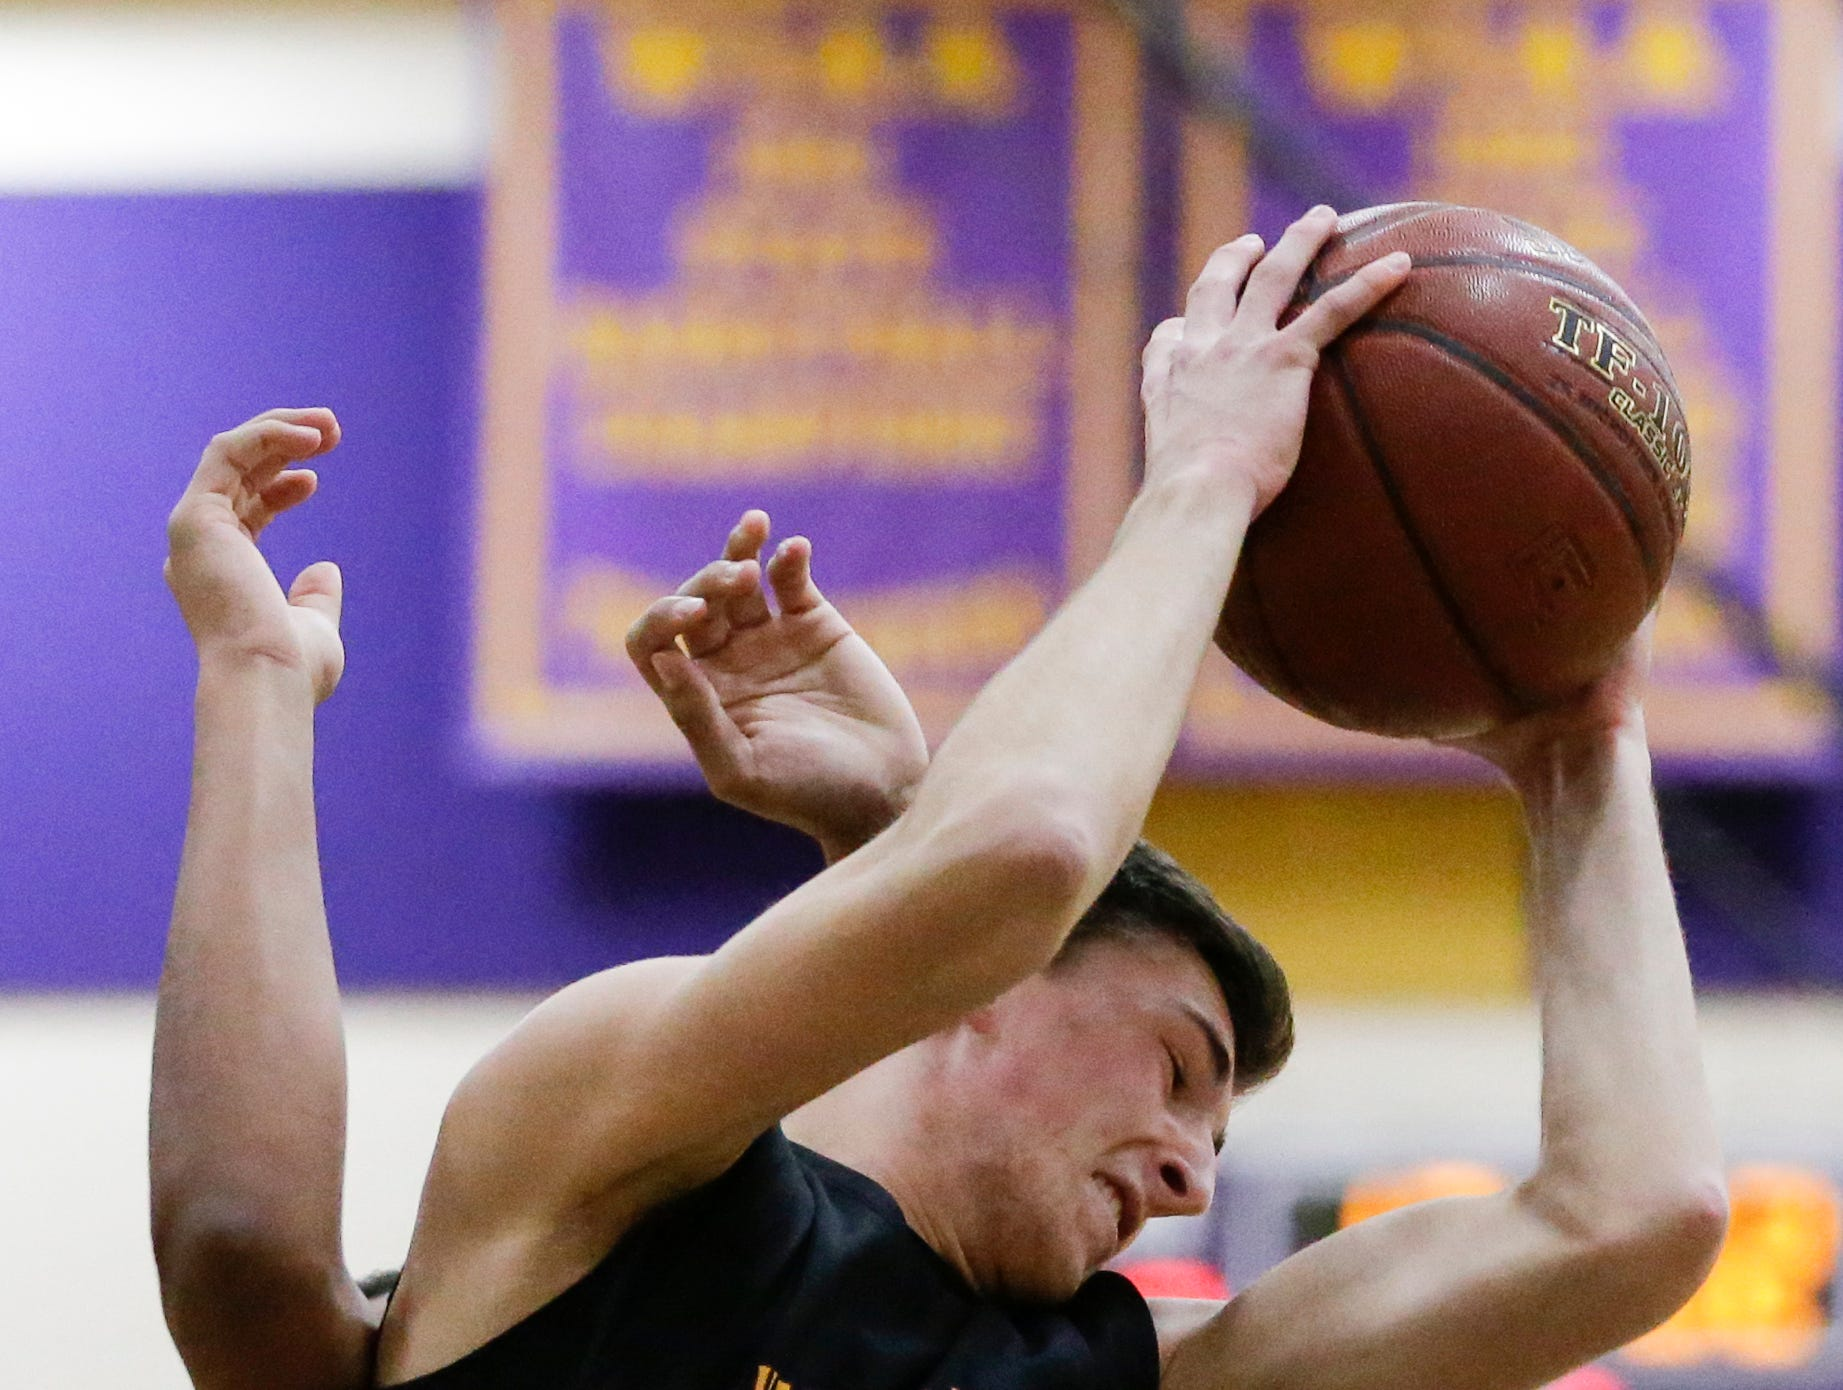 Sheboygan Falls' Justin Tenpas grabs a rebound against Two Rivers during an Eastern Wisconsin Conference game at Two Rivers High School Tuesday, December 4, 2018, in Two Rivers, Wis. Joshua Clark/USA TODAY NETWORK-Wisconsin